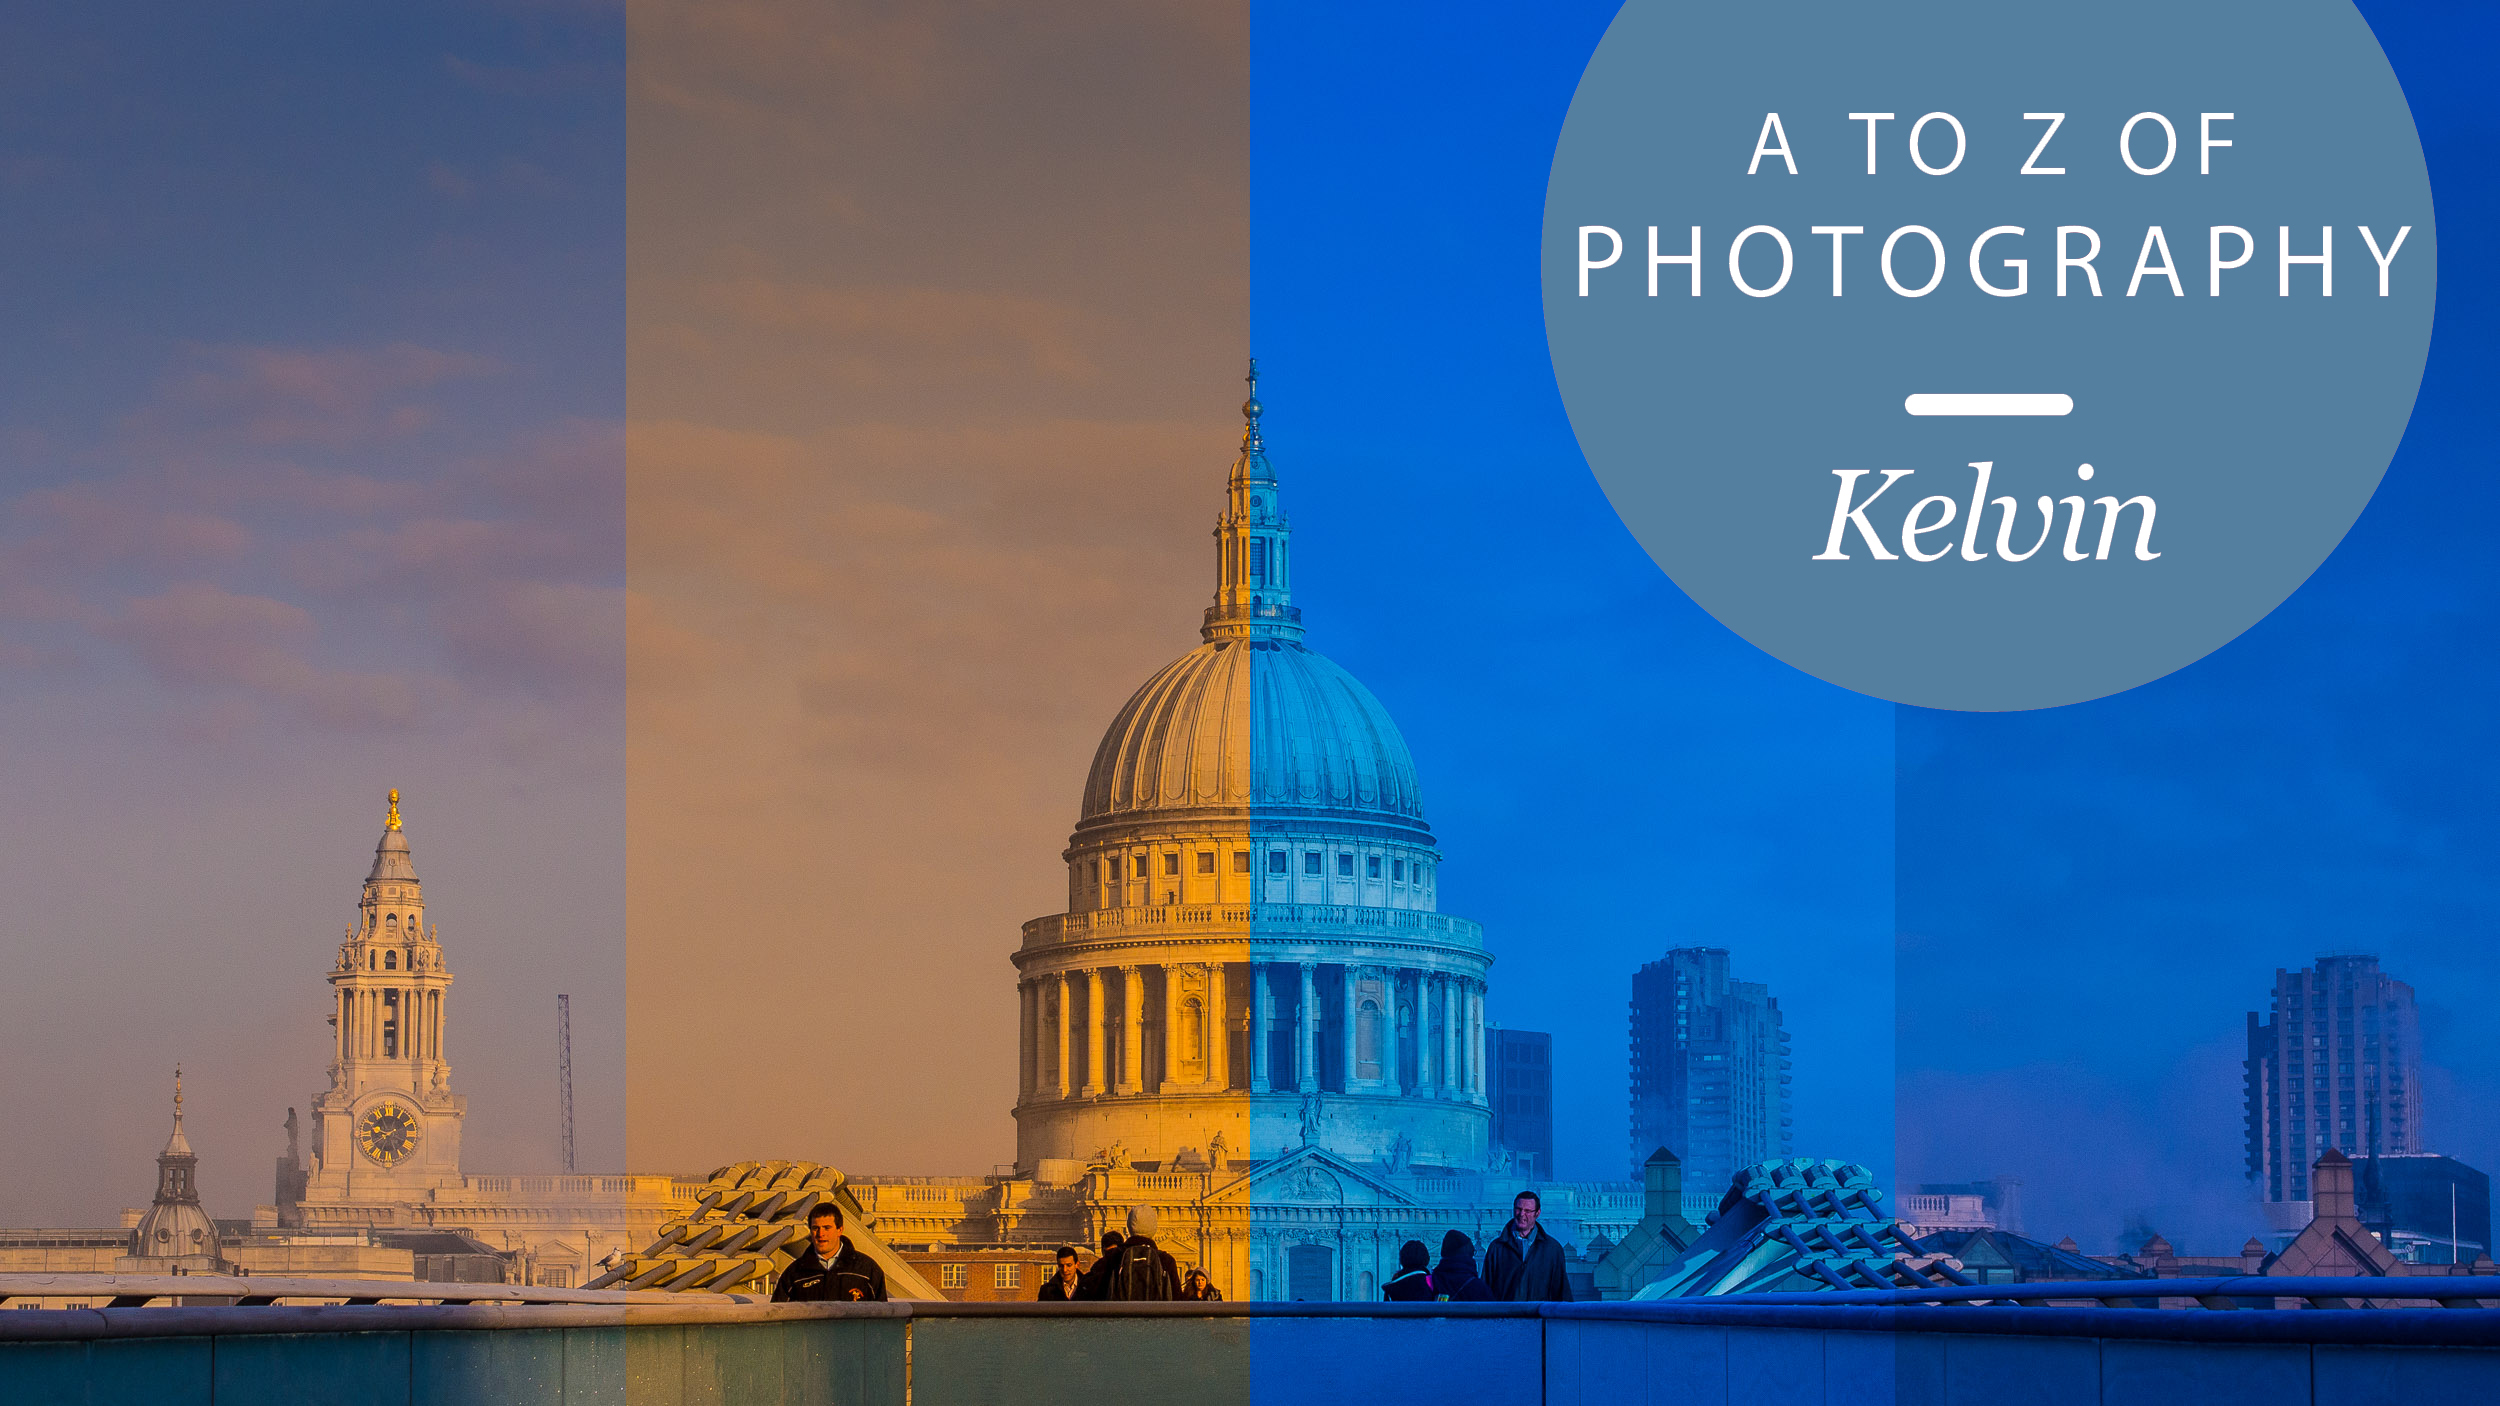 The A to Z of photography: Kelvin